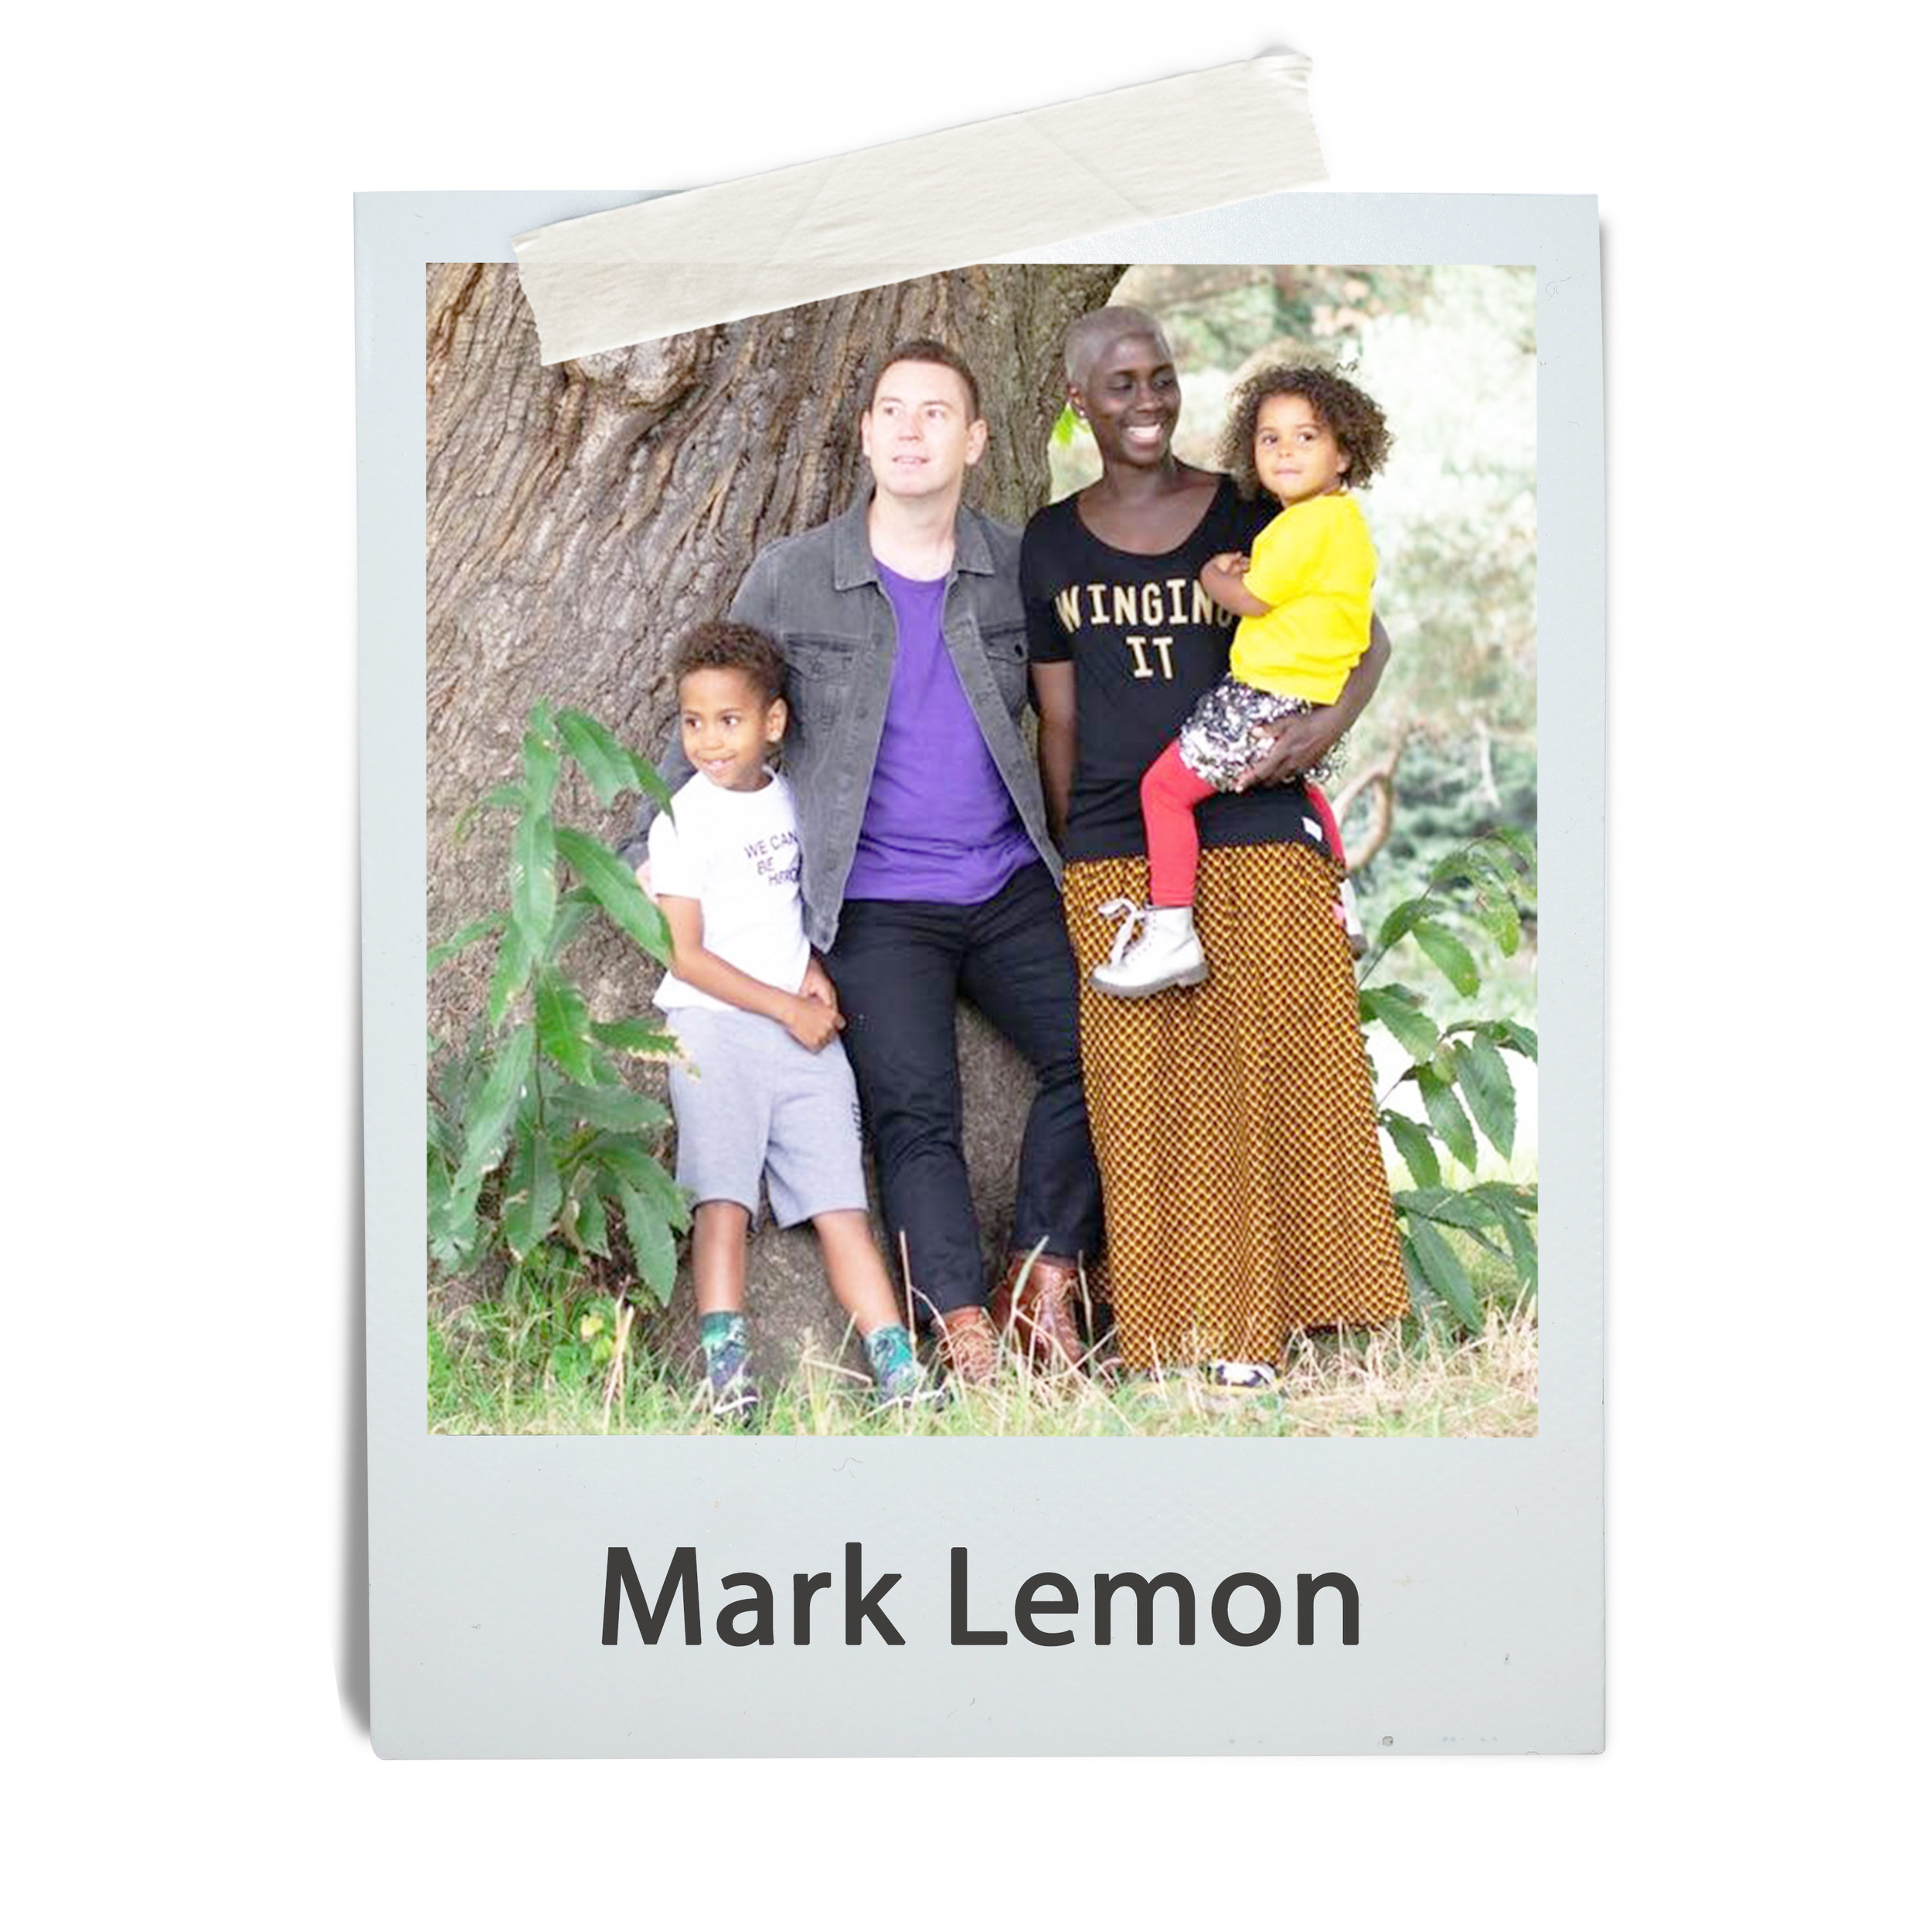 Mark Lemon